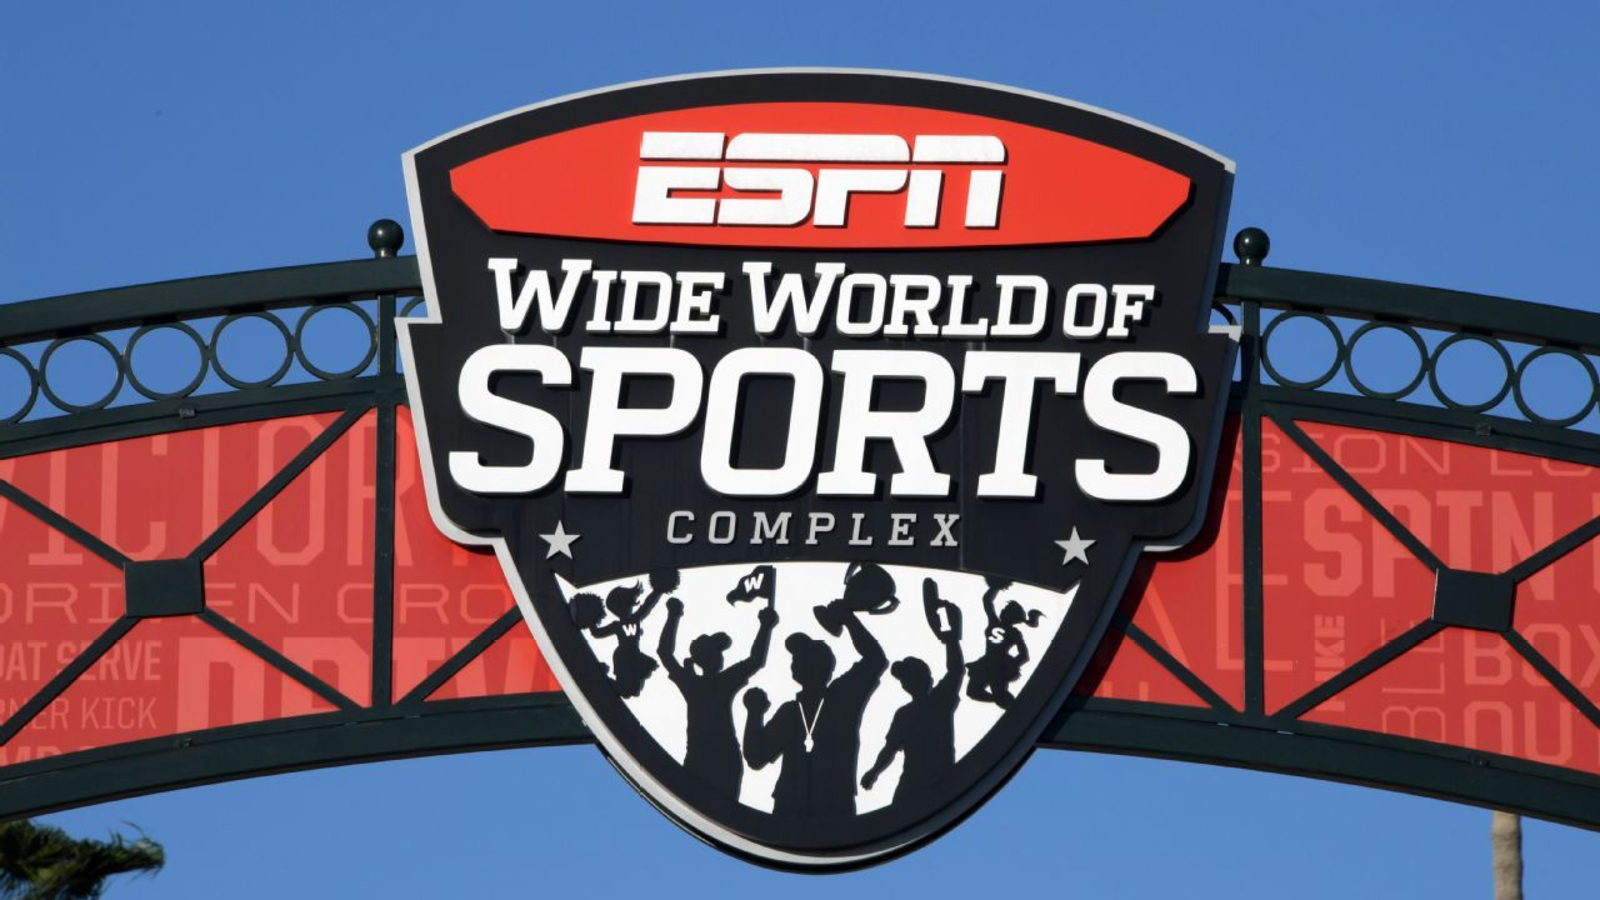 Nba Disney In Talks About Resuming Season At Espn Wide World Of Sports Complex In Orlando 6abc Philadelphia